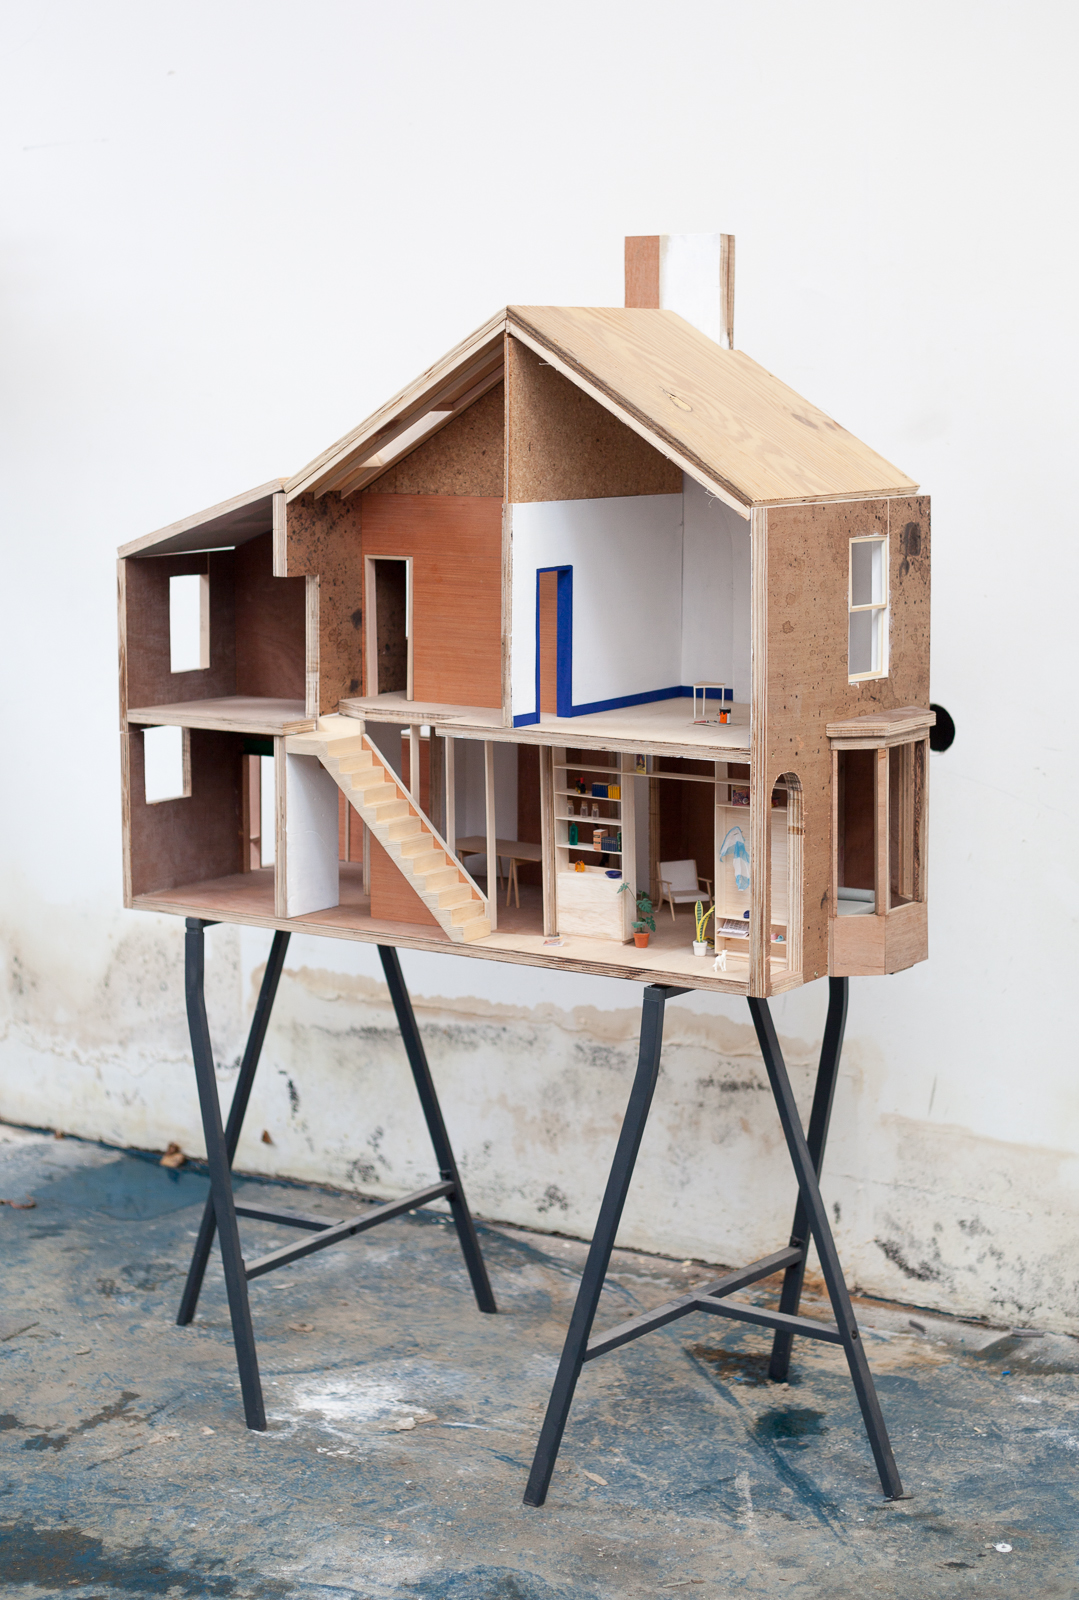 CLT Model, Granby Four Streets. Image courtesy of Assemble.